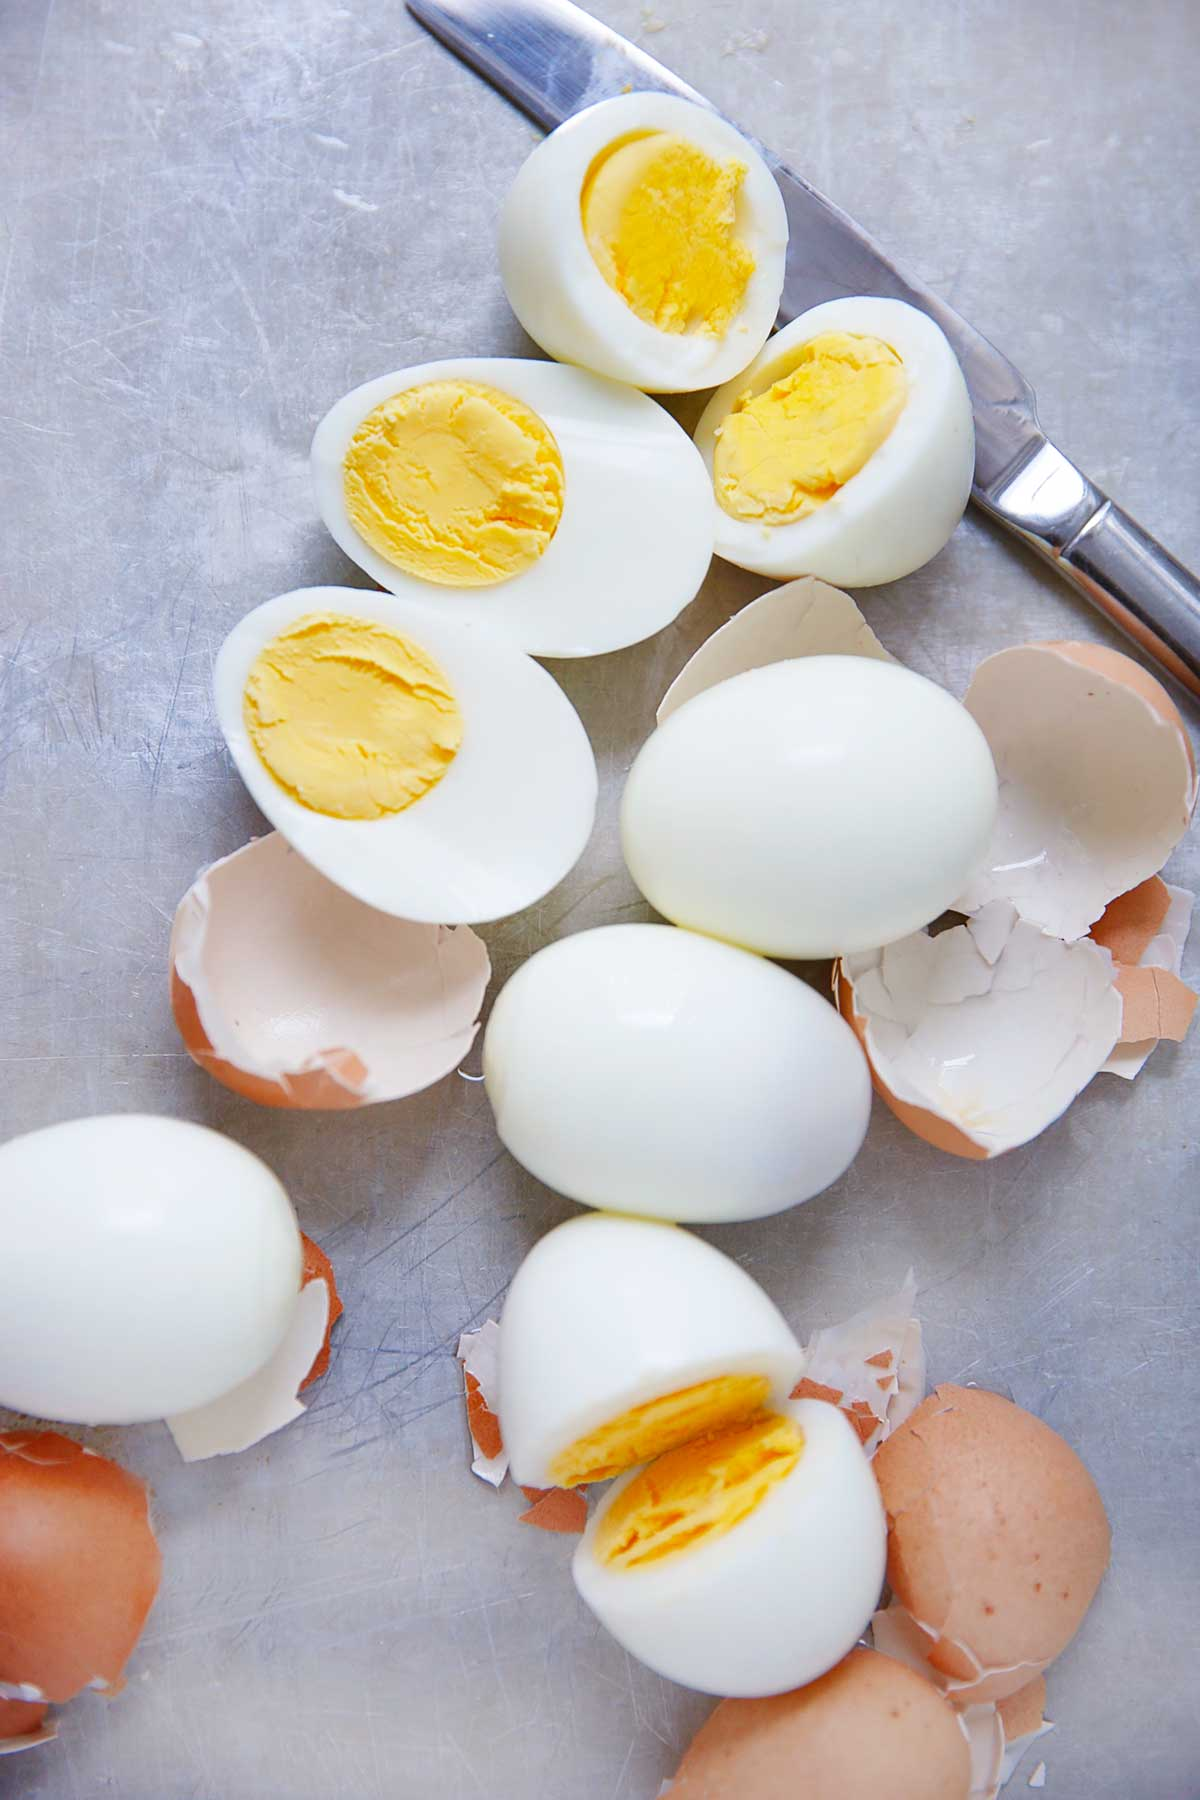 Instant Pot Hard Boiled Eggs - Lexi's Clean Kitchen